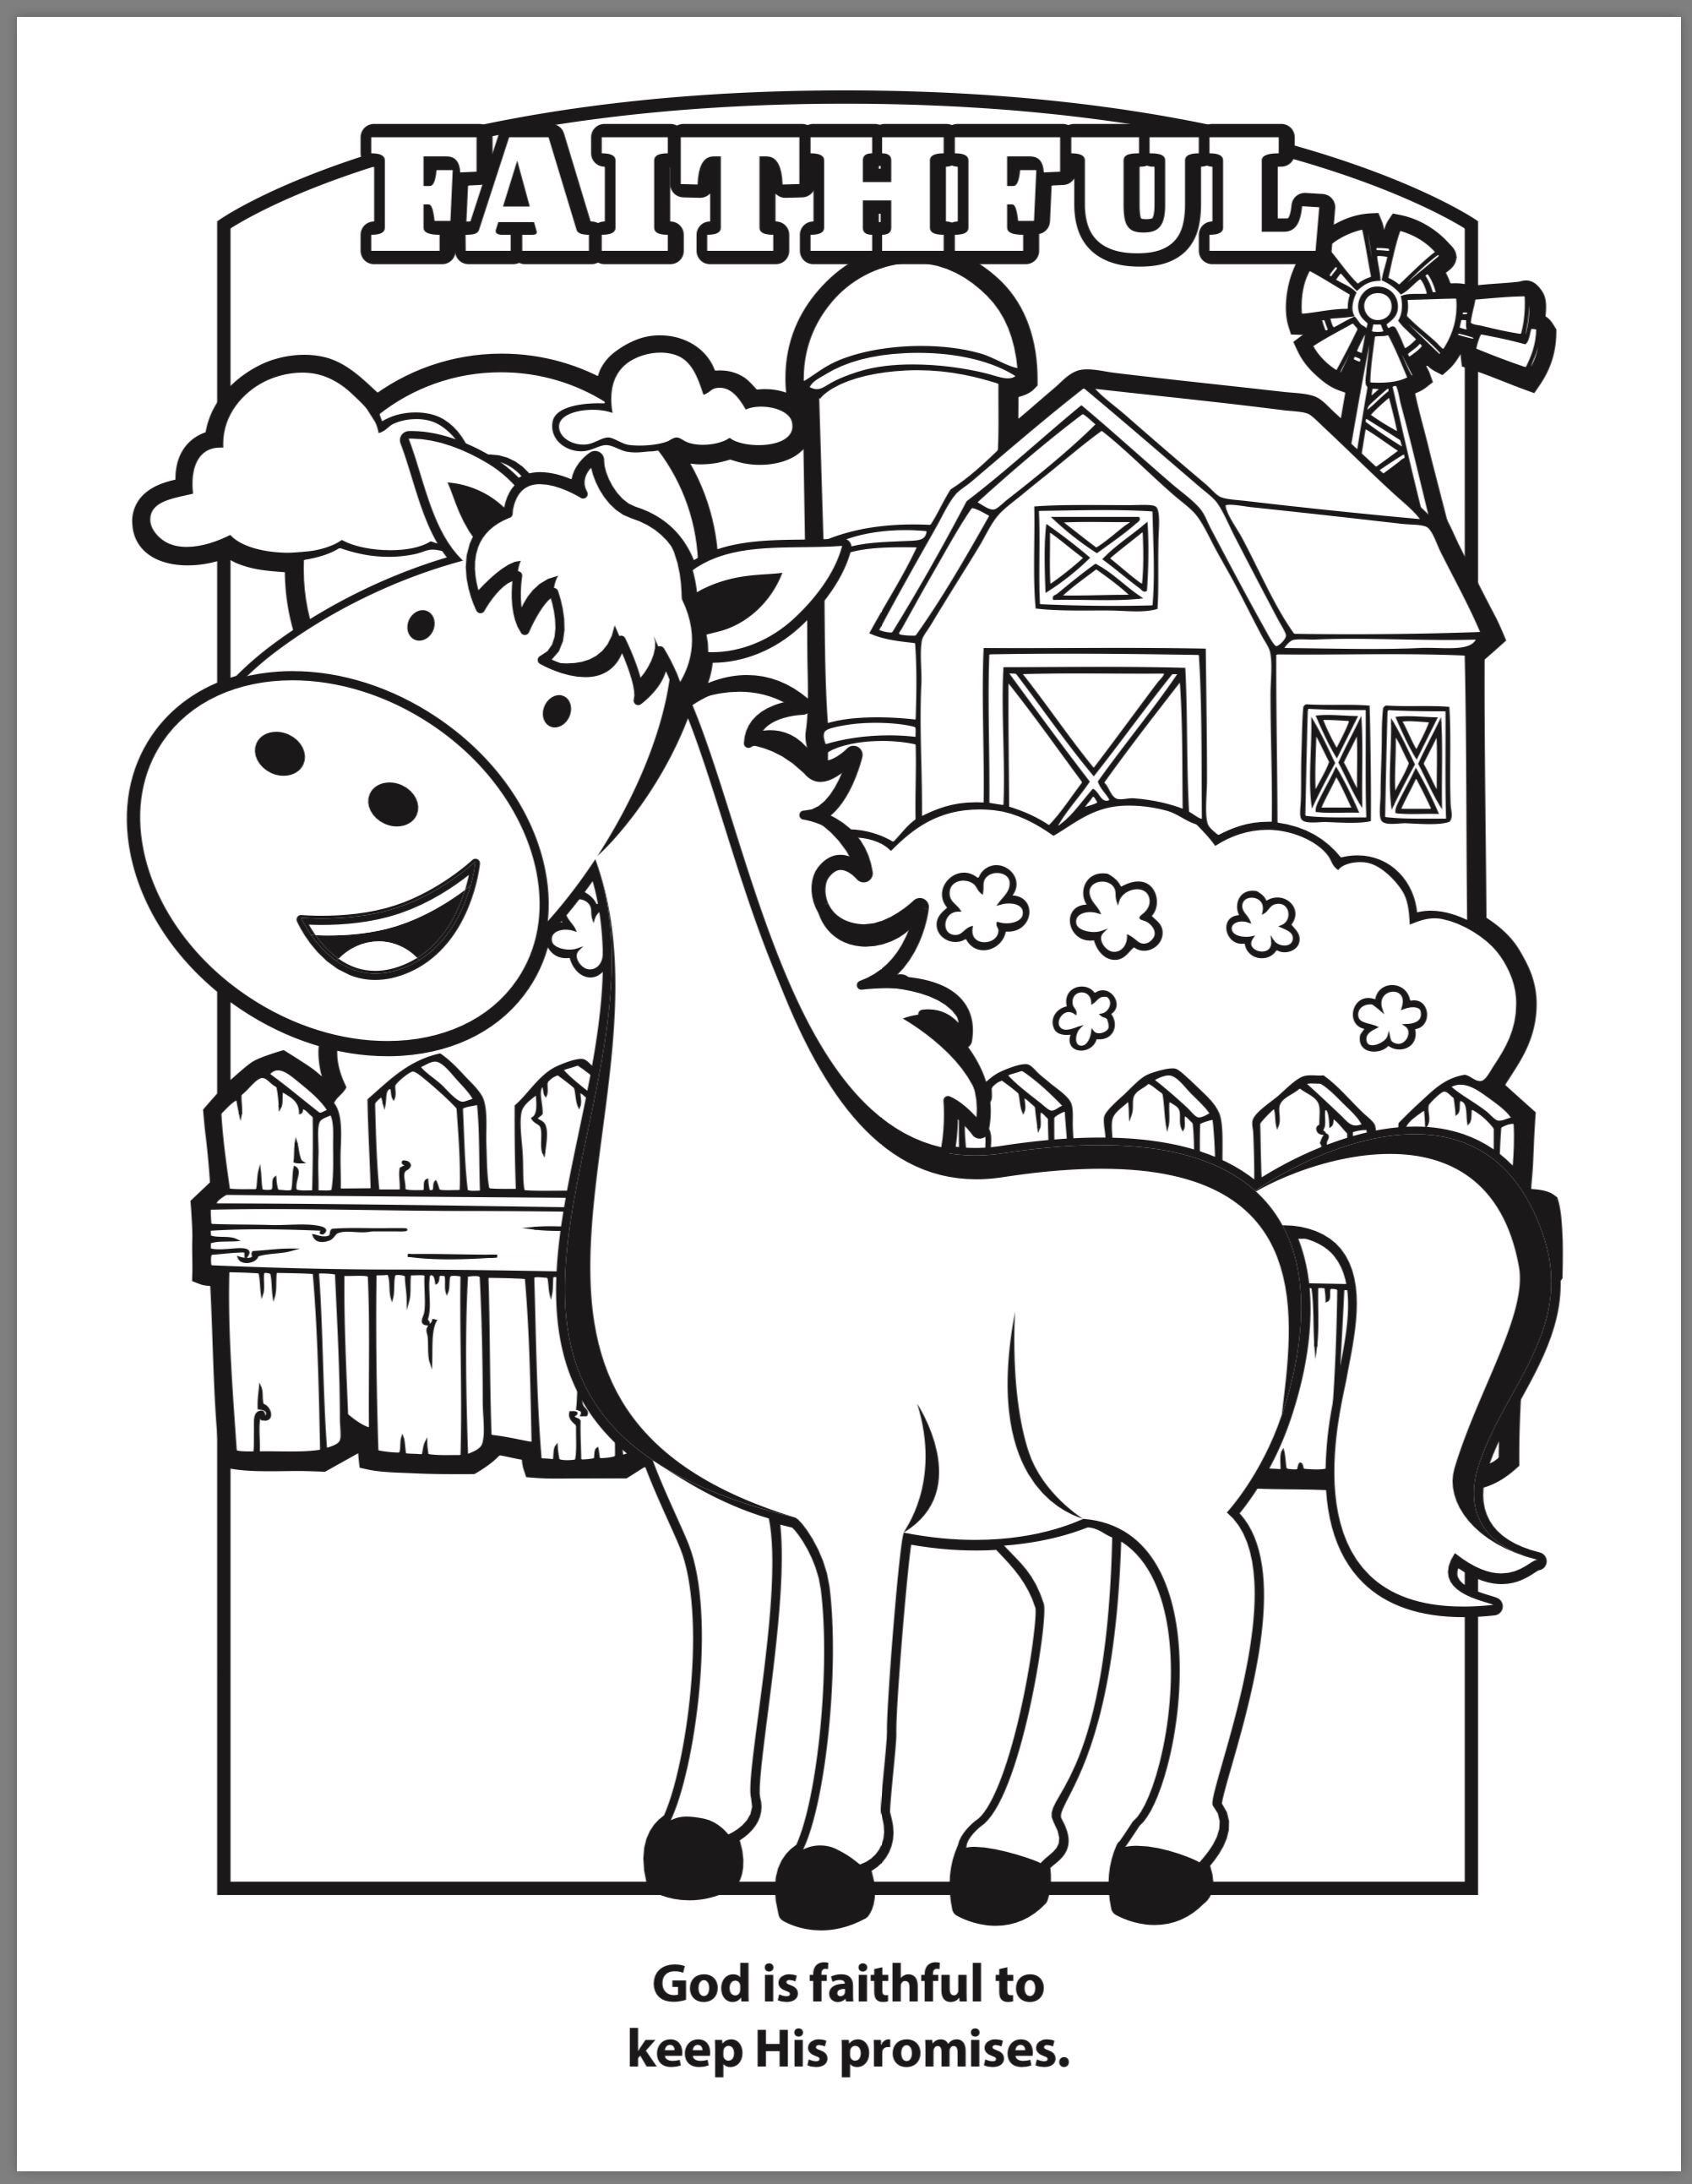 Vbs 2019 Coloring Book Farm Vbs Decorations Vbs Themes Vbs Crafts